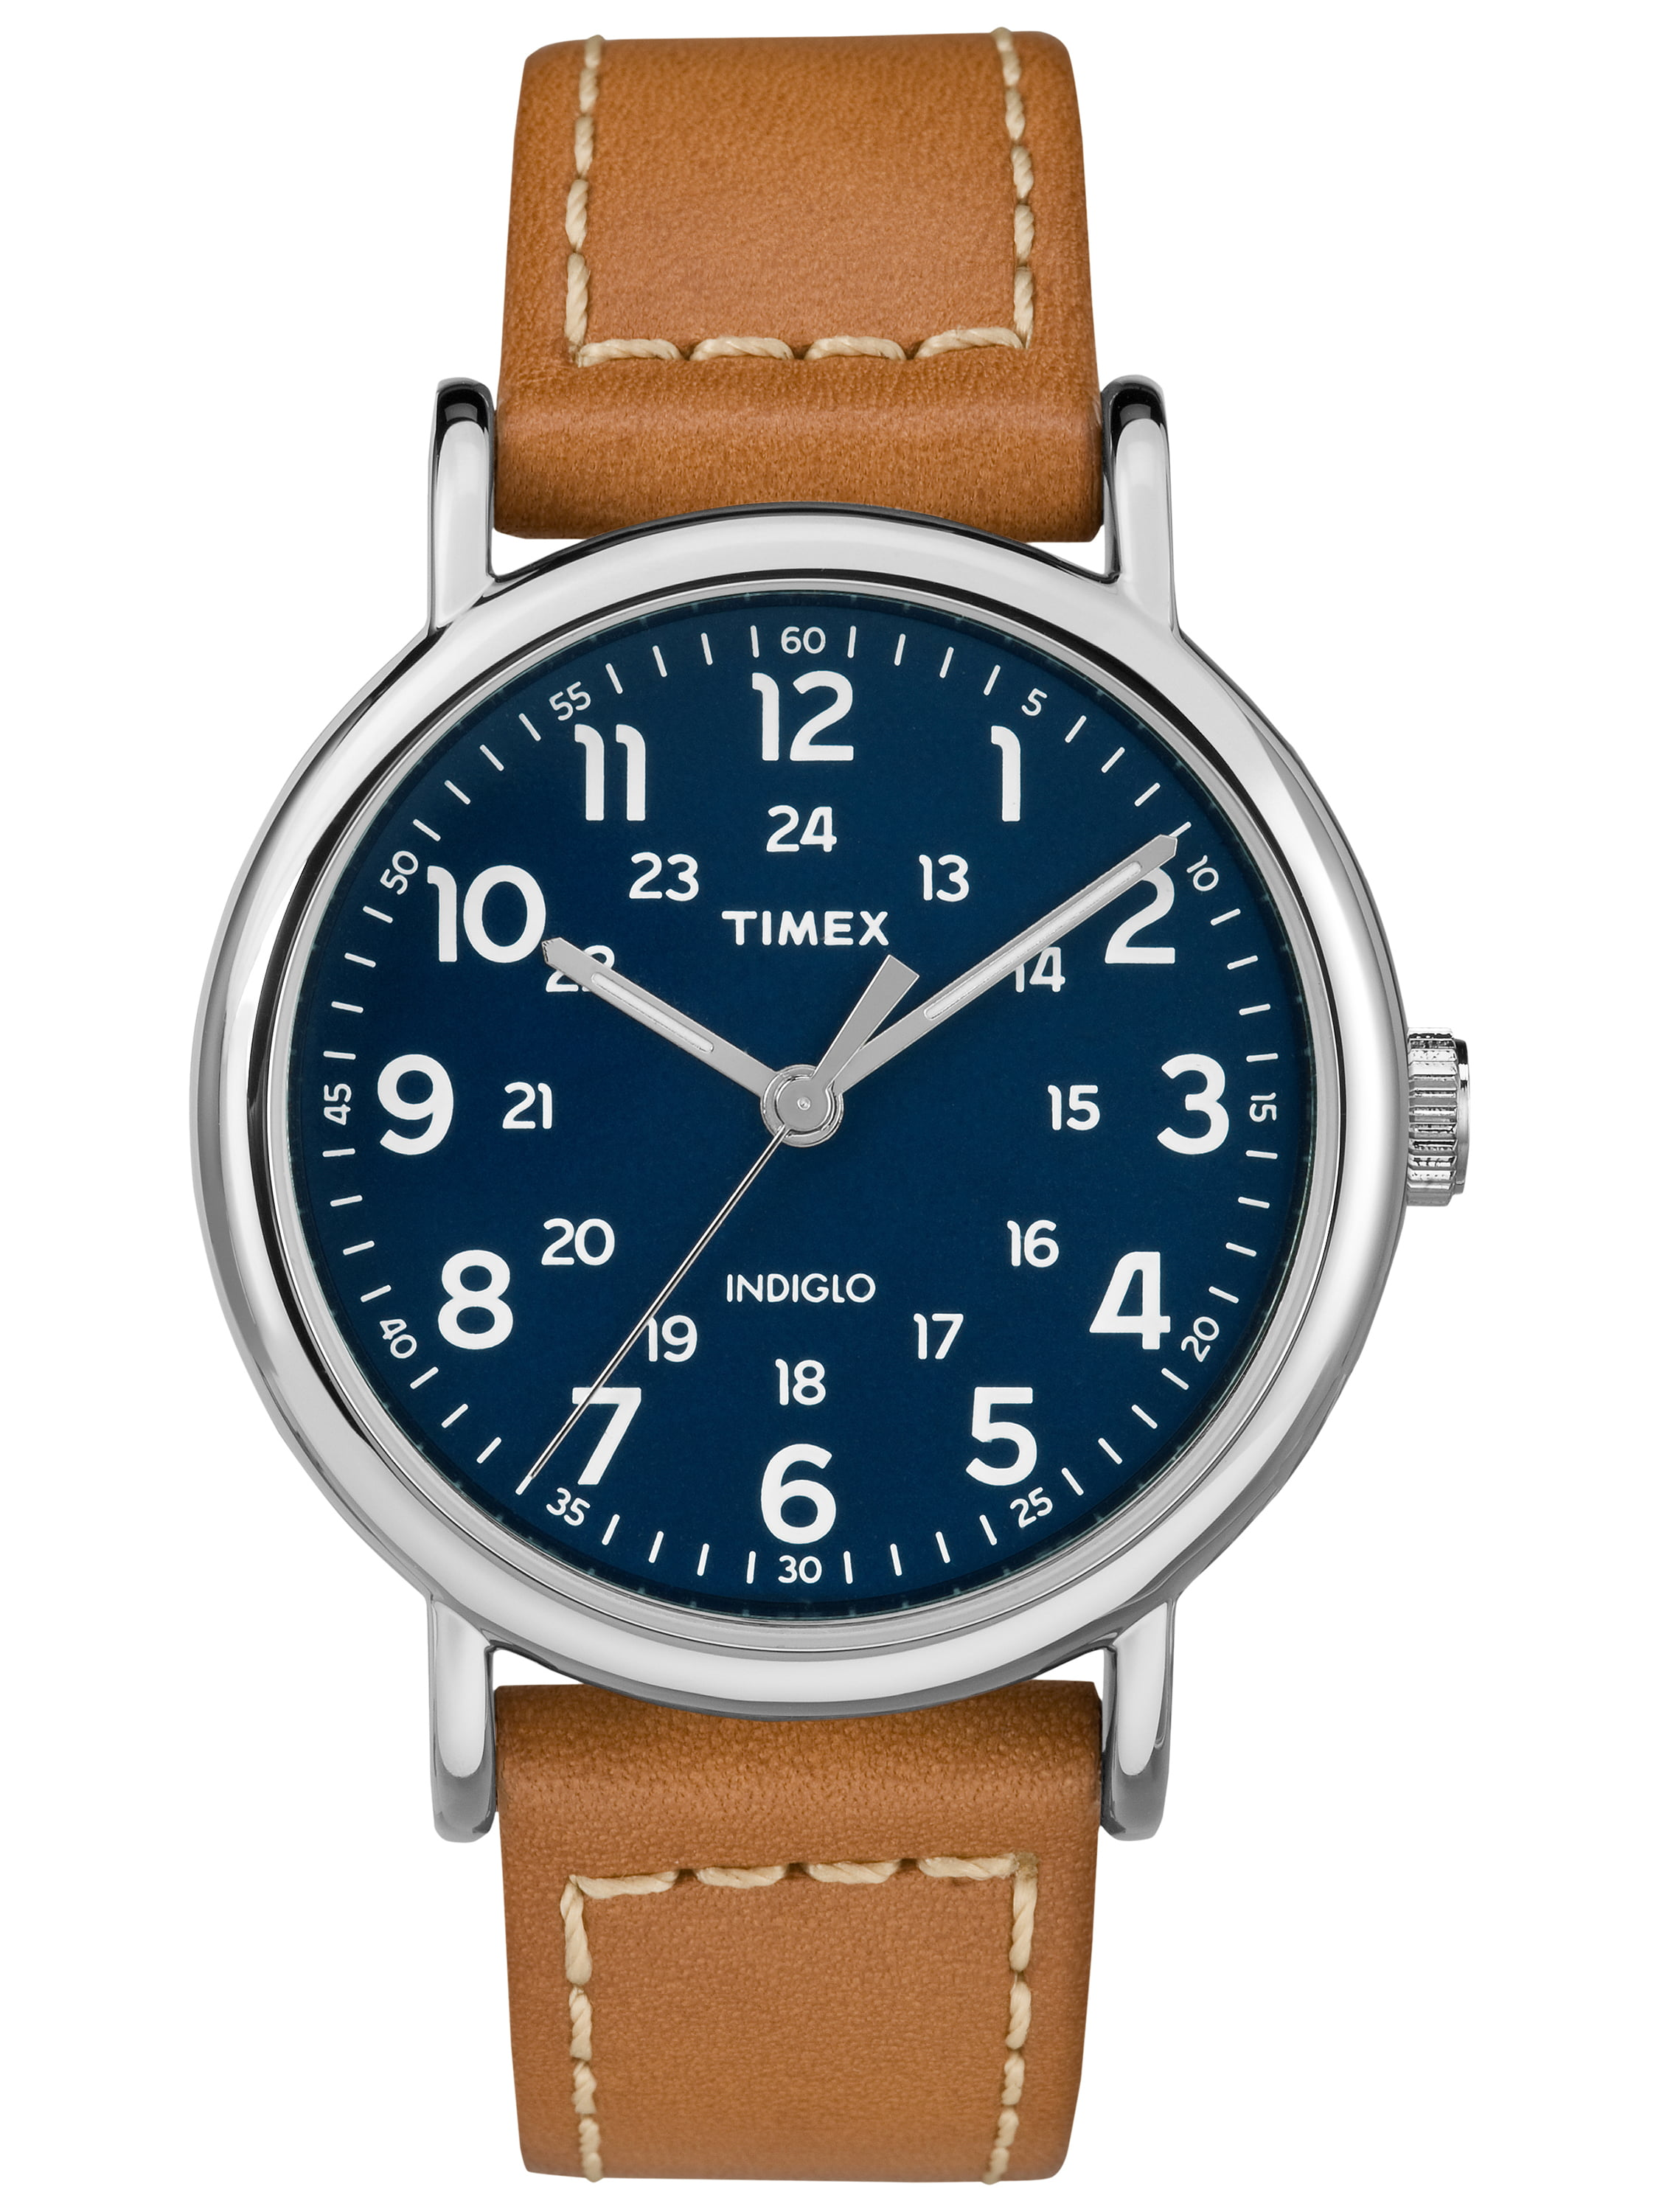 Timex Men's Weekender 40 Brown Blue Watch, Leather Strap by Timex